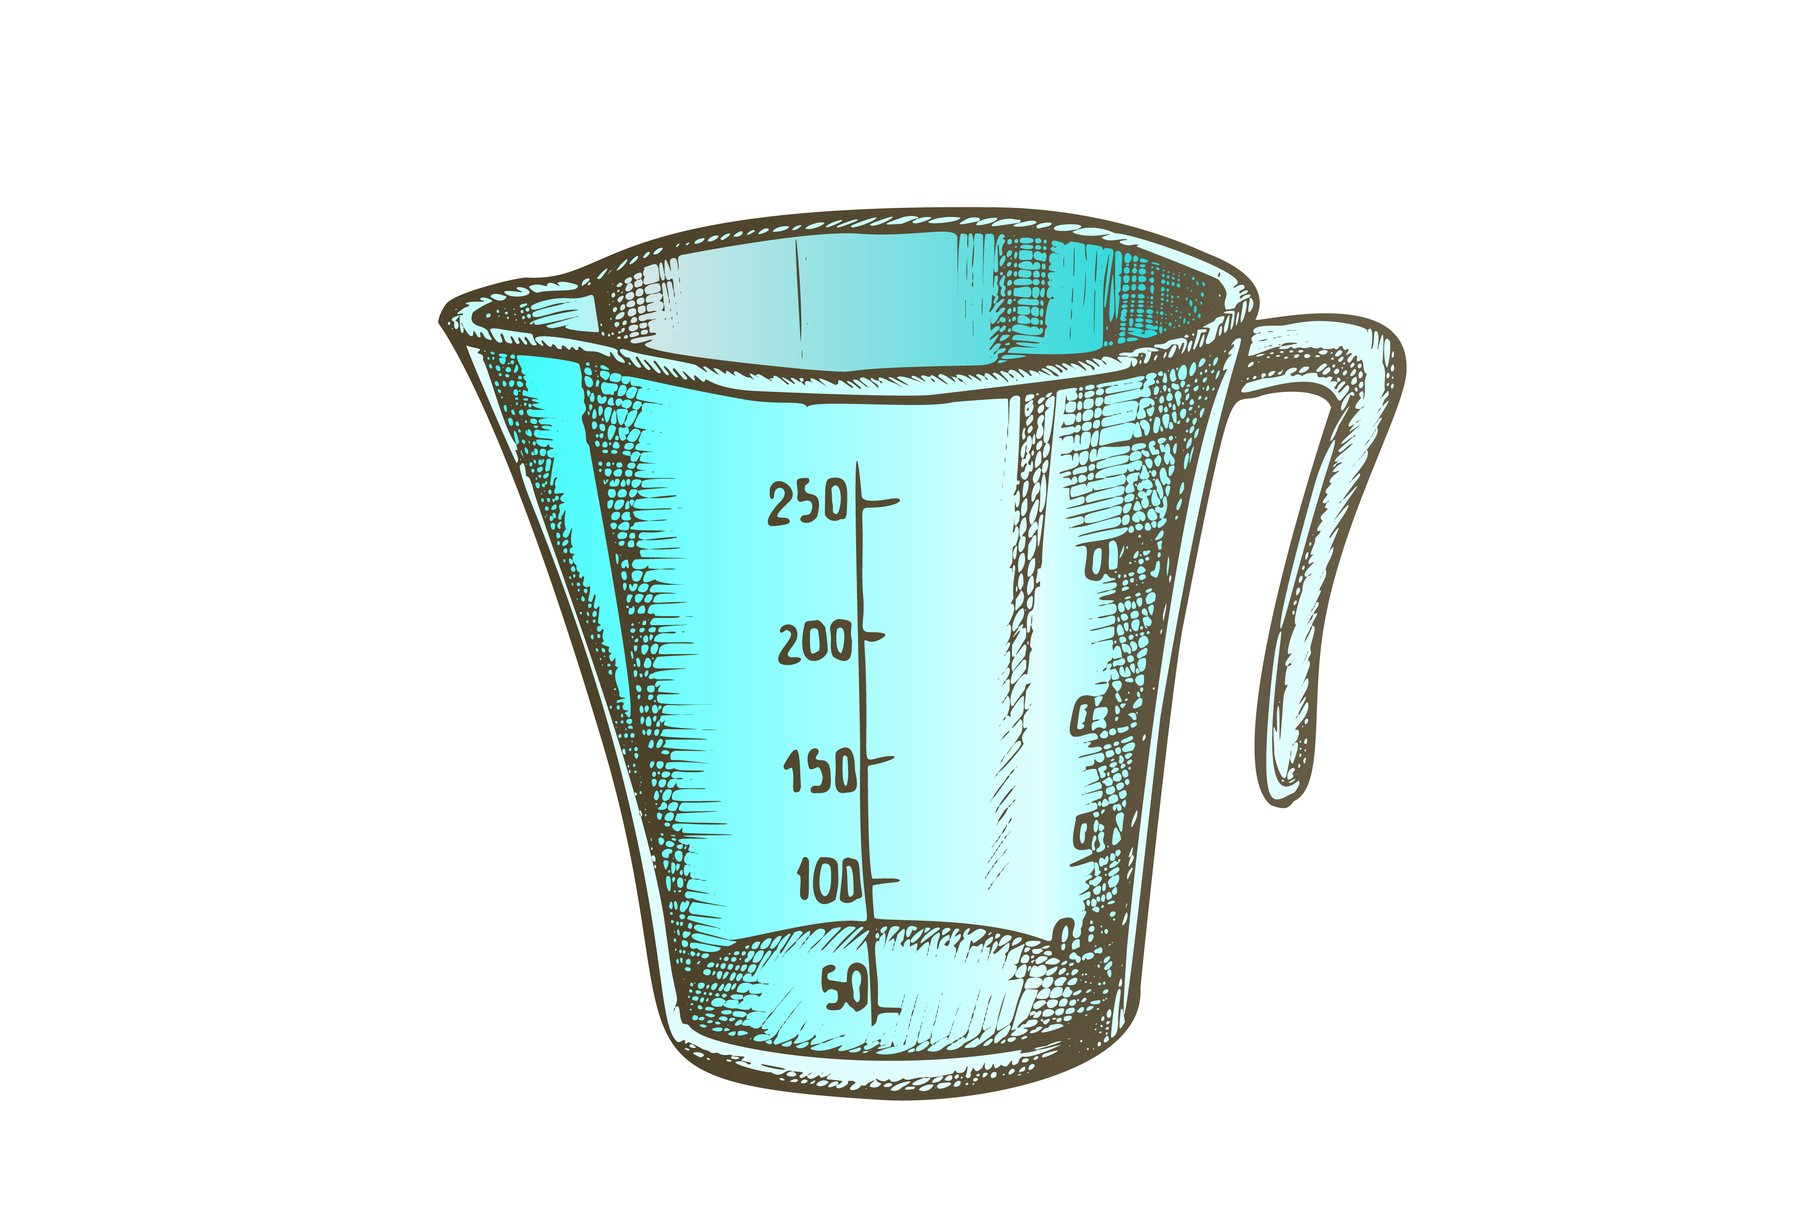 Measuring Cup For Baking And Cooking Color Vector example image 1